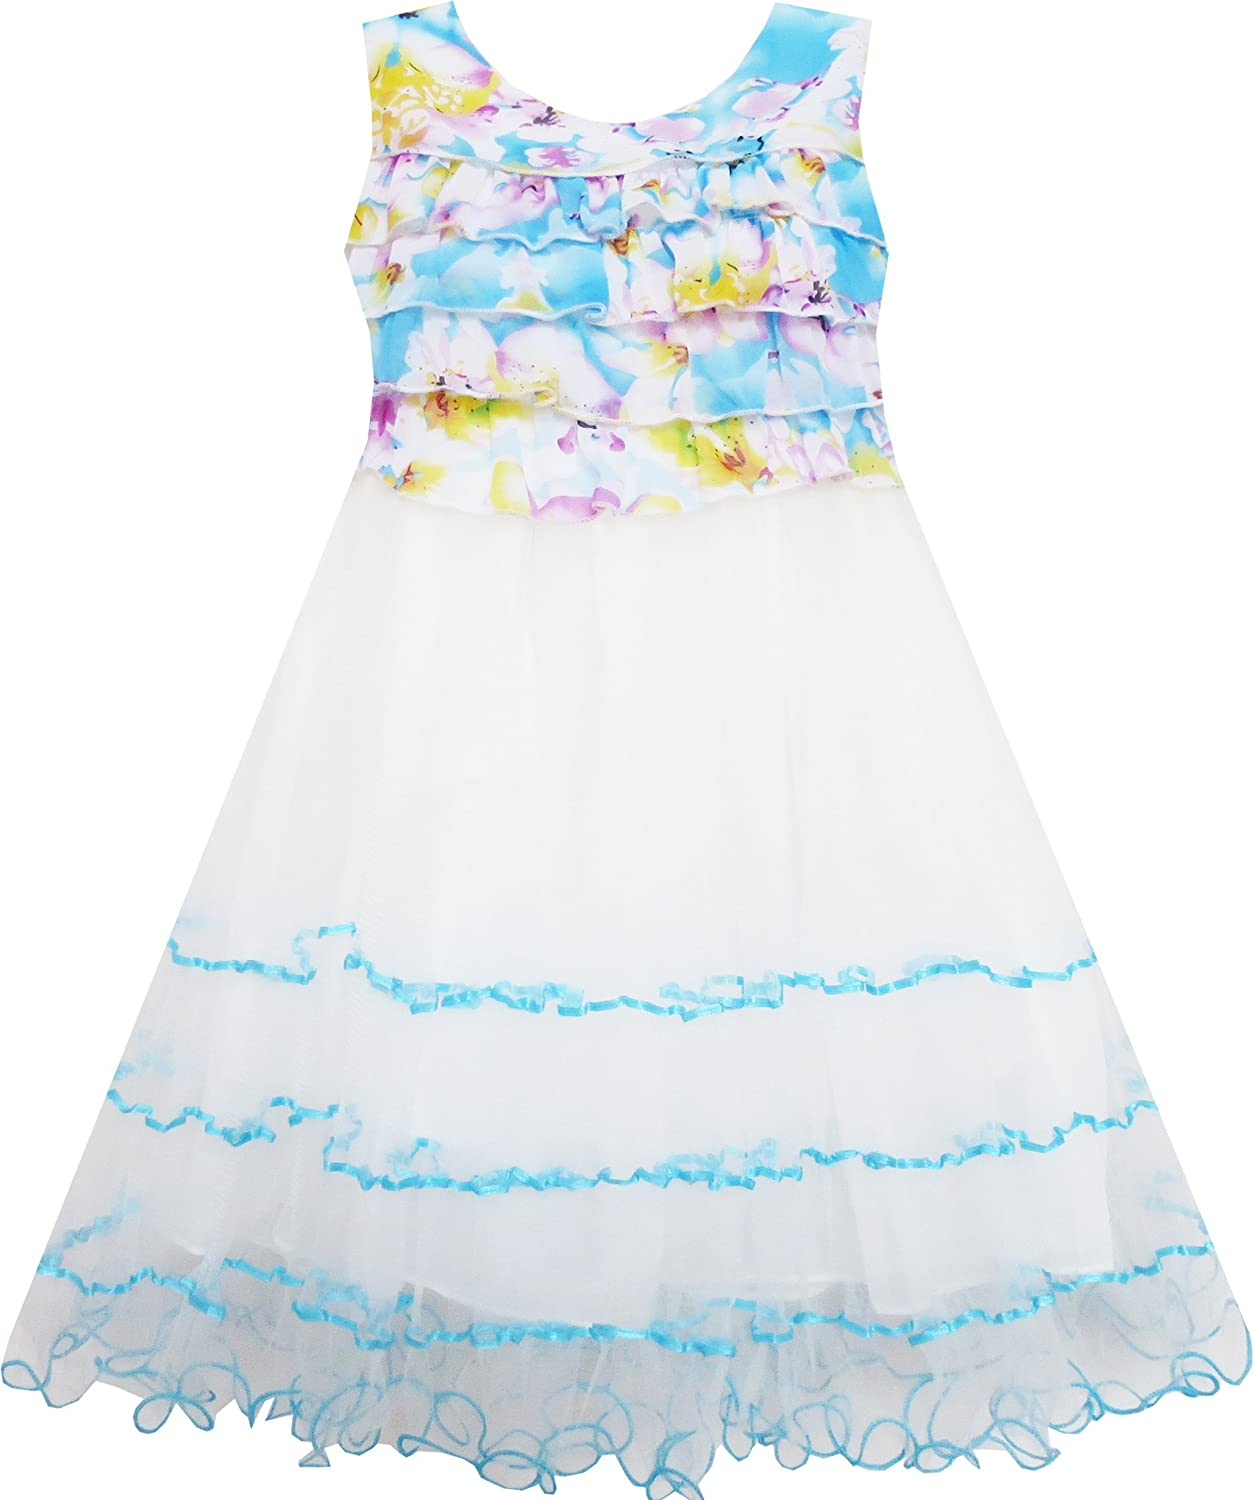 Sunny Fashion Girls Dress Sleeveless Pleated Bodice Lace Tiered Skirt Blue